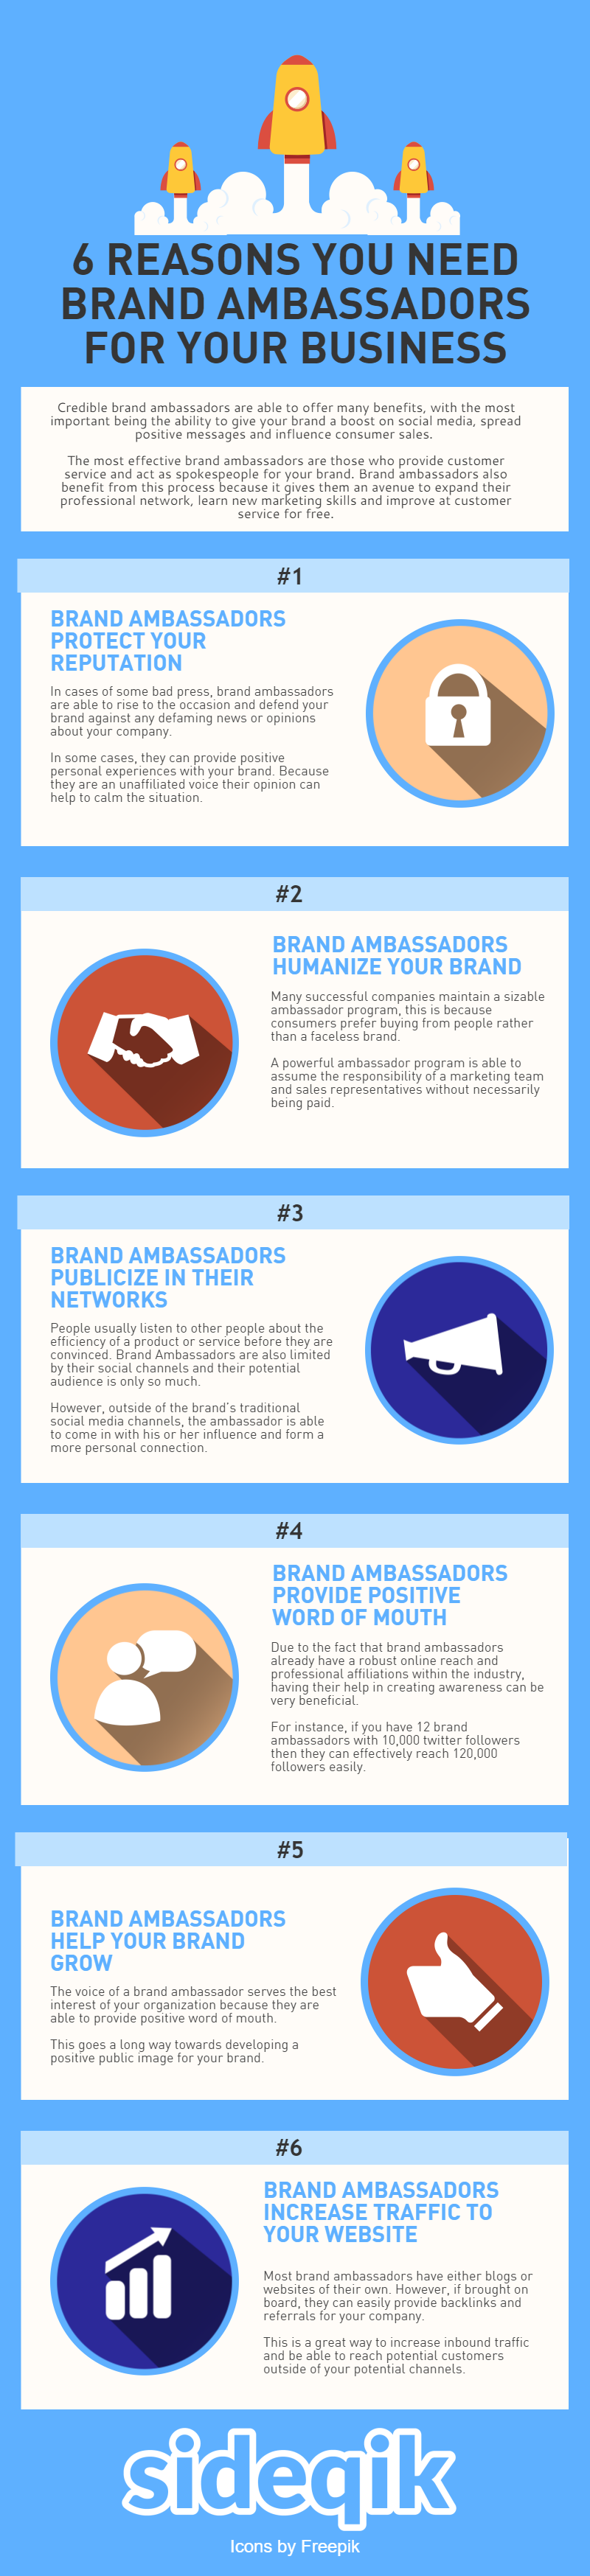 6-reasons-you-need-brand-ambassadors-for-your-business